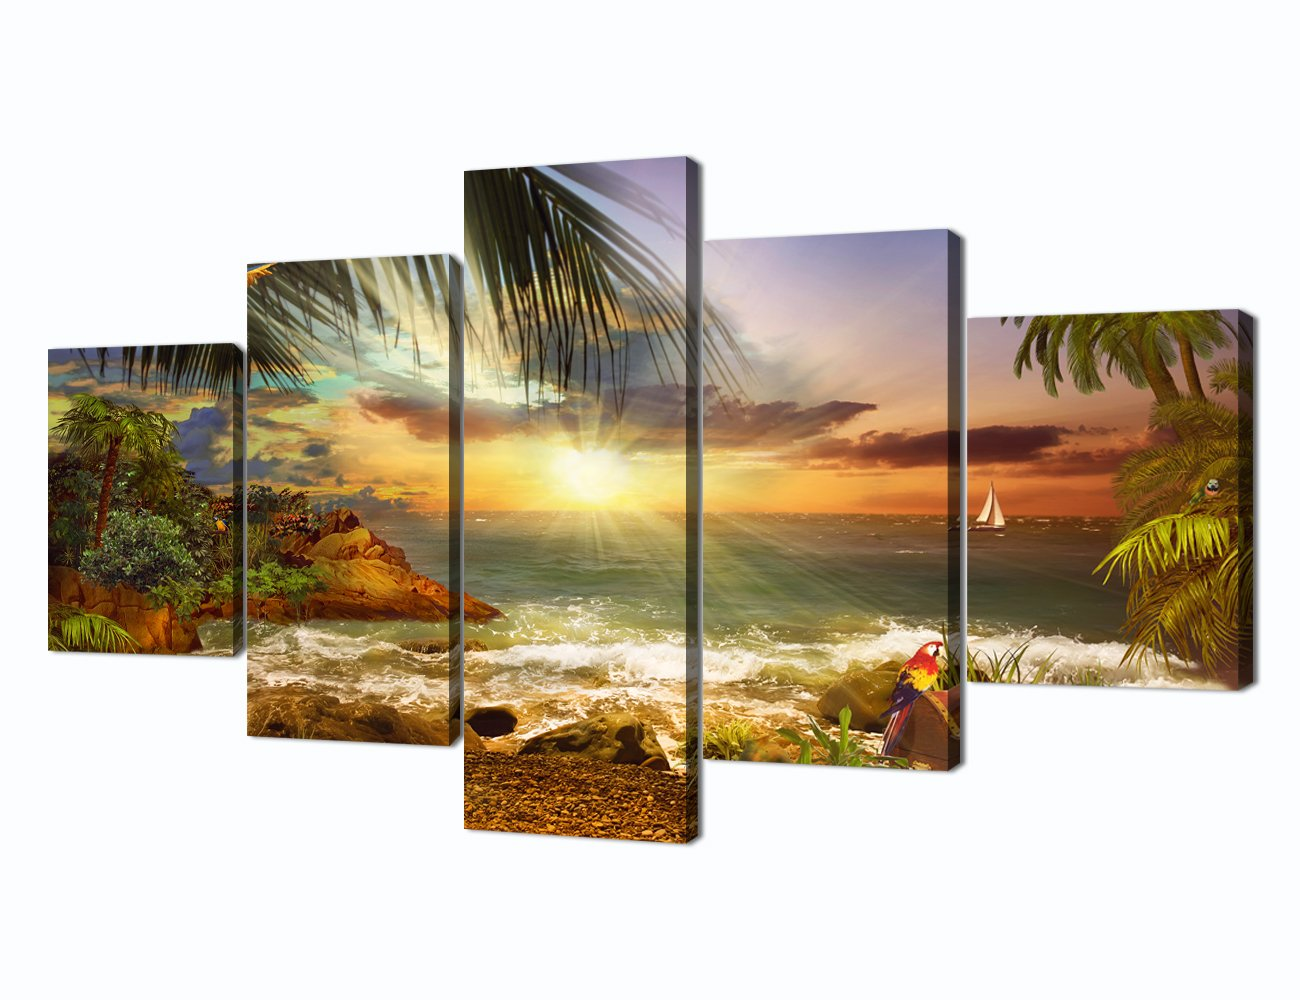 Scene of Sea Waves Palm Tree Landscape Picture Modern Painting on Canvas 5 Piece Framed Wall Art for Living Room Bedroom Kitchen Home Decor Stretched Gallery Canvas Wrap Giclee Print (60''W x 32''H)